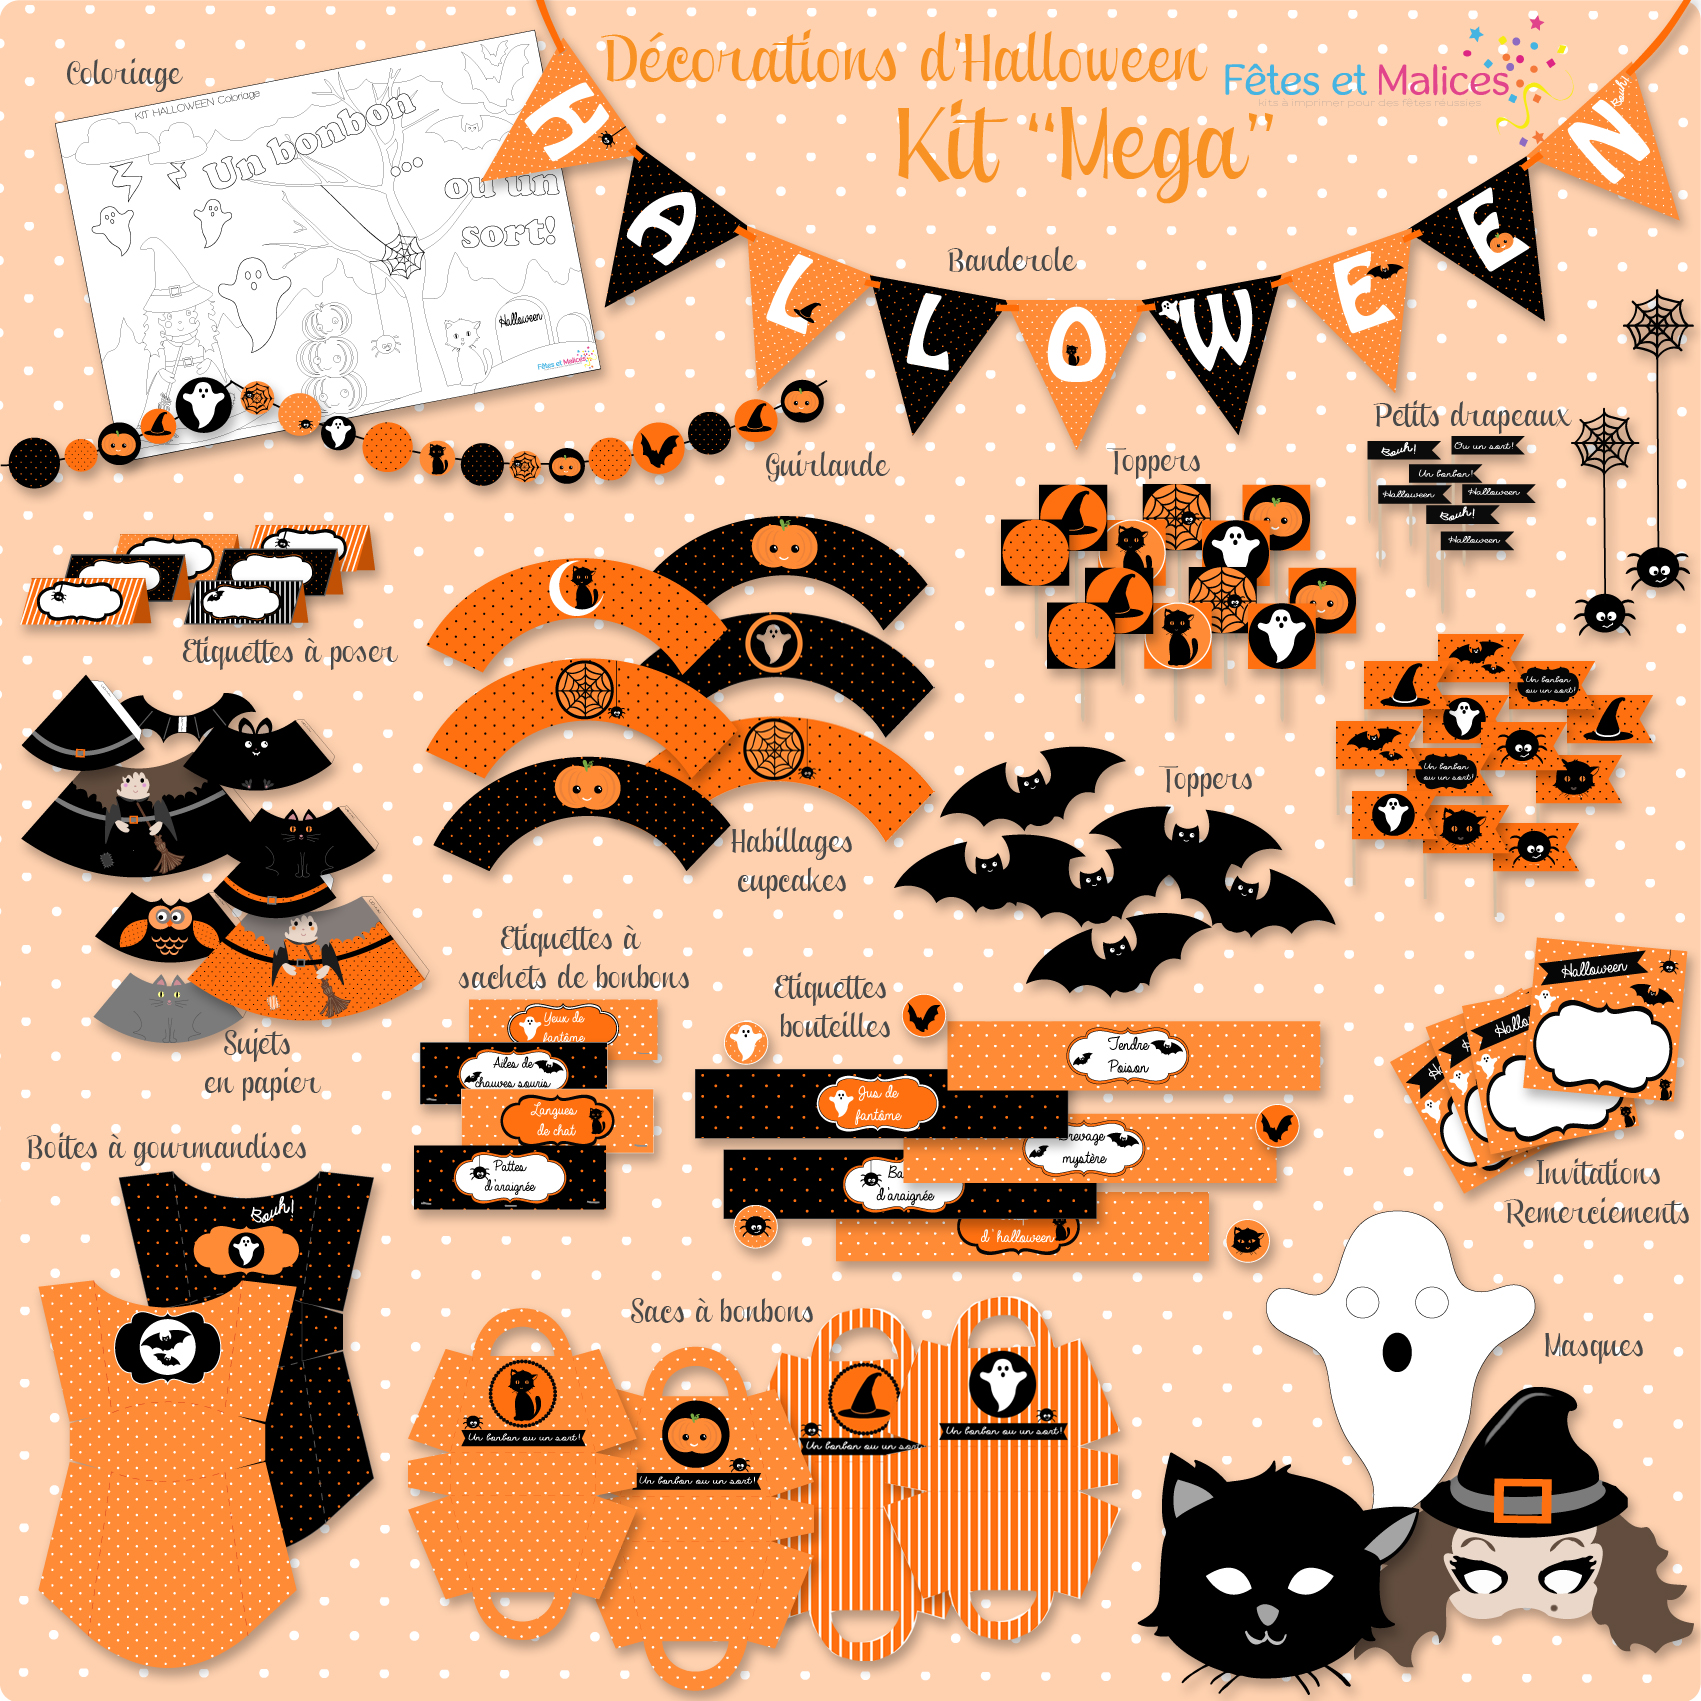 Decoration De Table Pour Halloween Fait Maison : Kit déco d halloween à imprimer printable sweet table